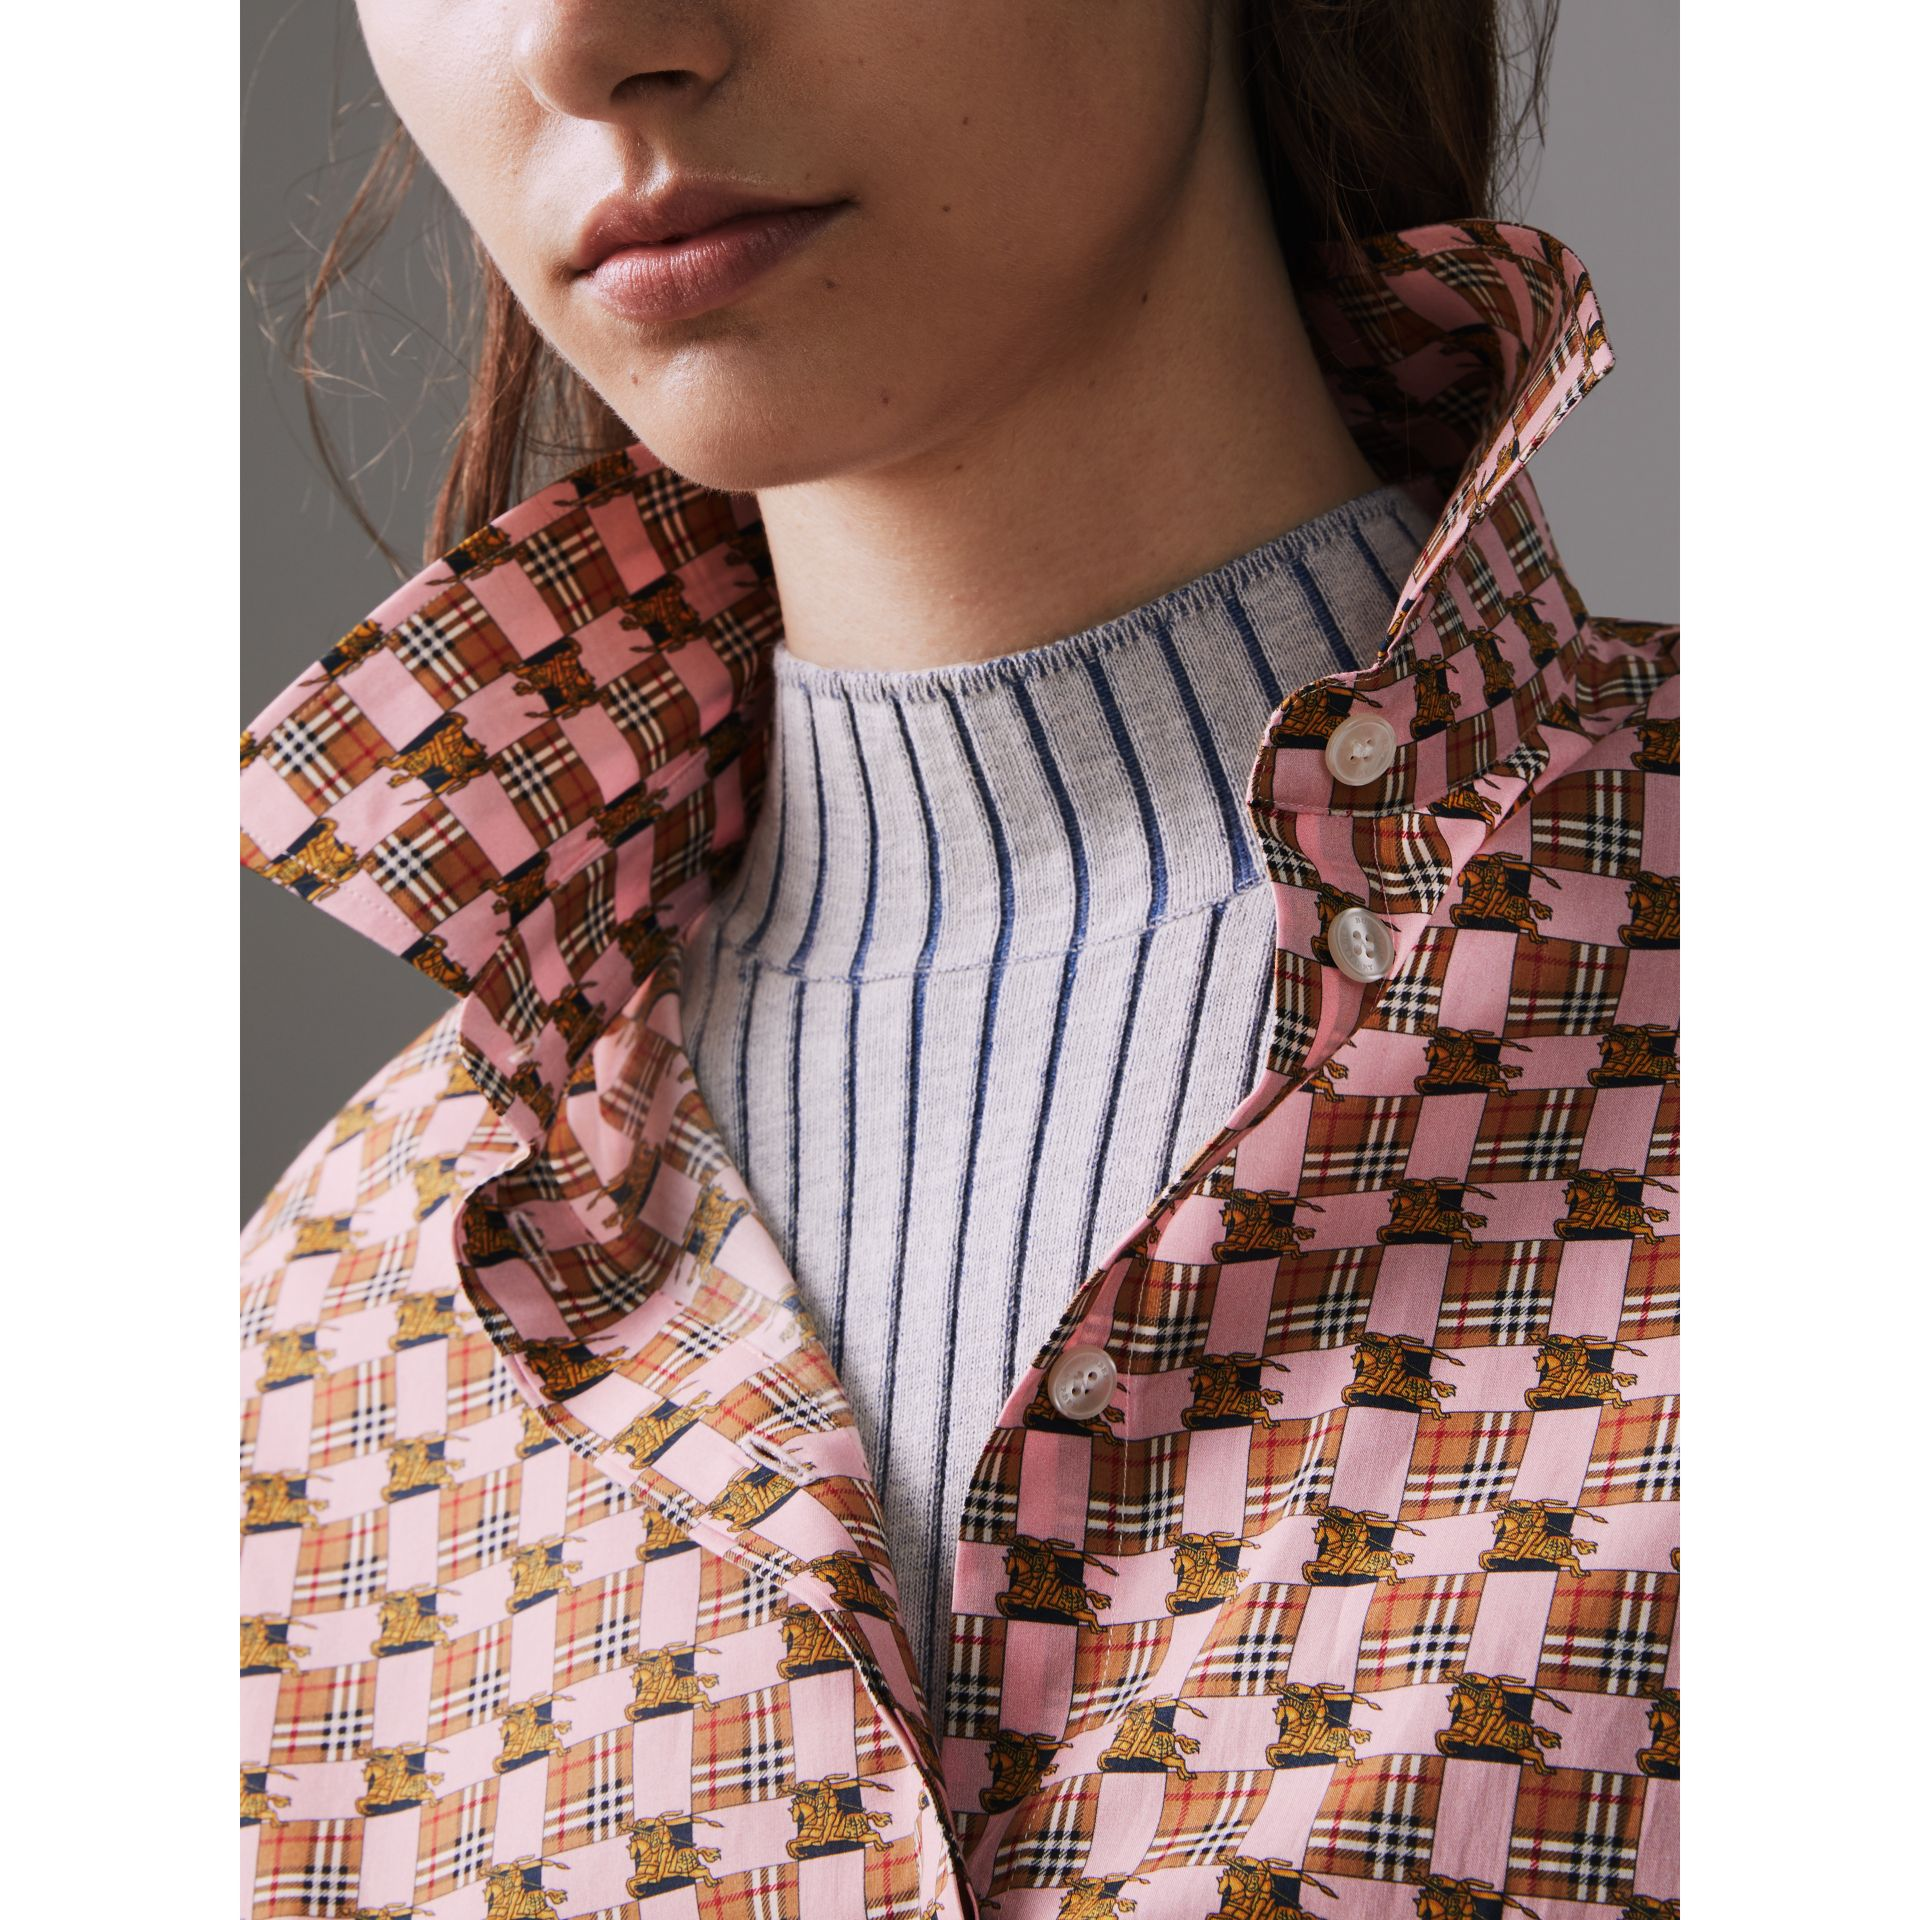 Tiled Archive Print Cotton Shirt in Pink - Women | Burberry Canada - gallery image 1